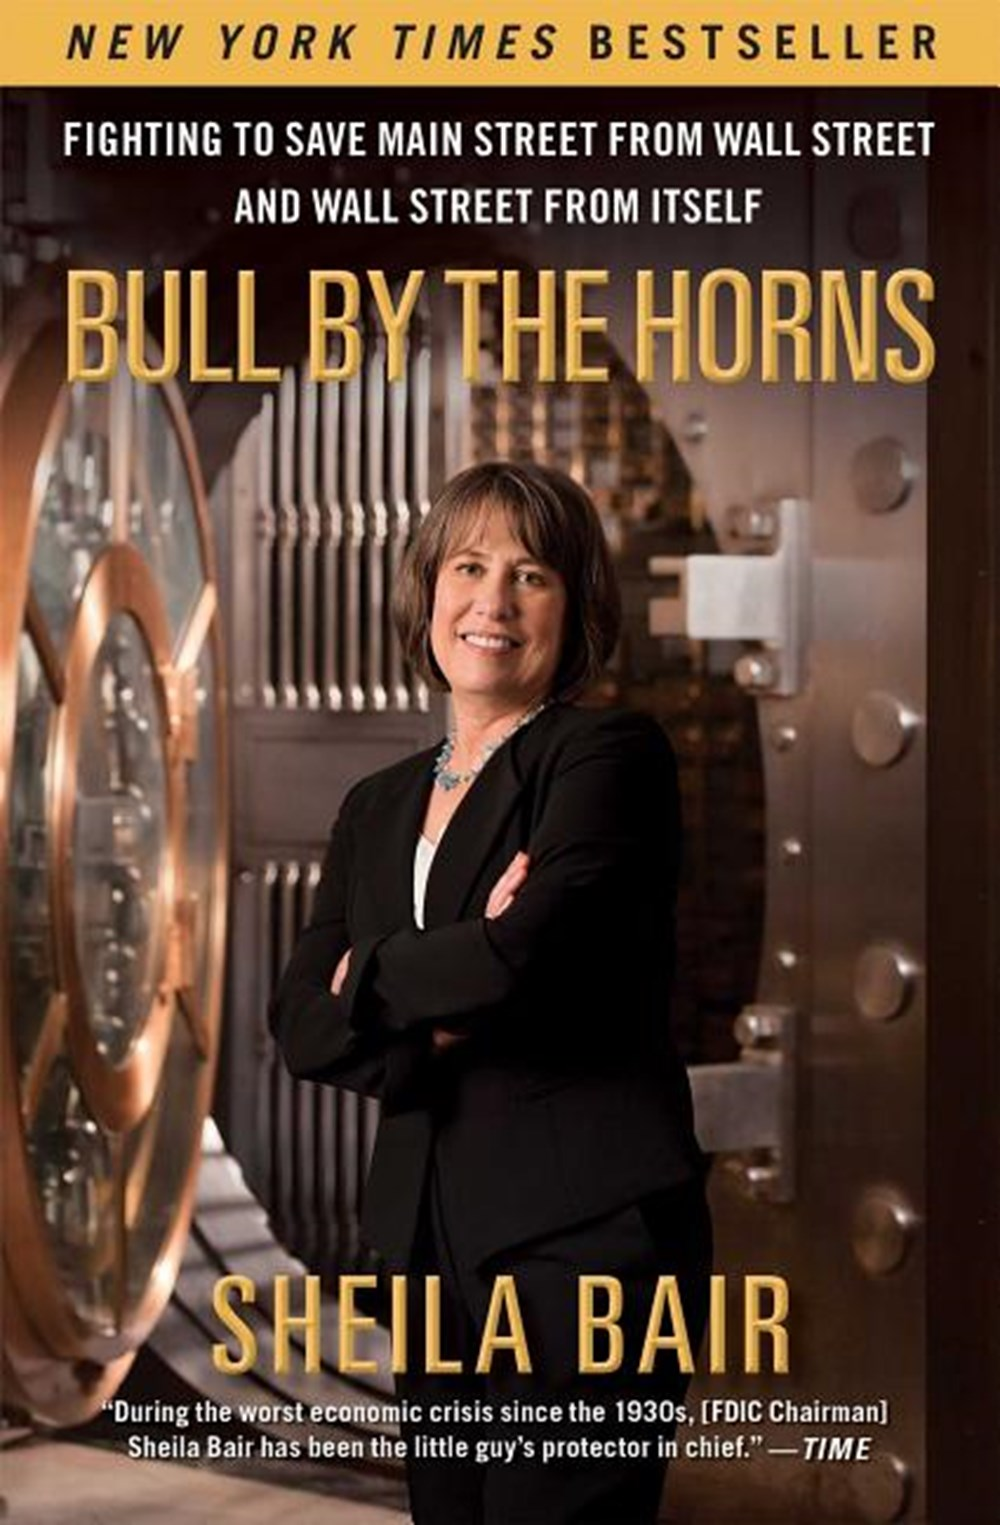 Bull by the Horns Fighting to Save Main Street from Wall Street and Wall Street from Itself